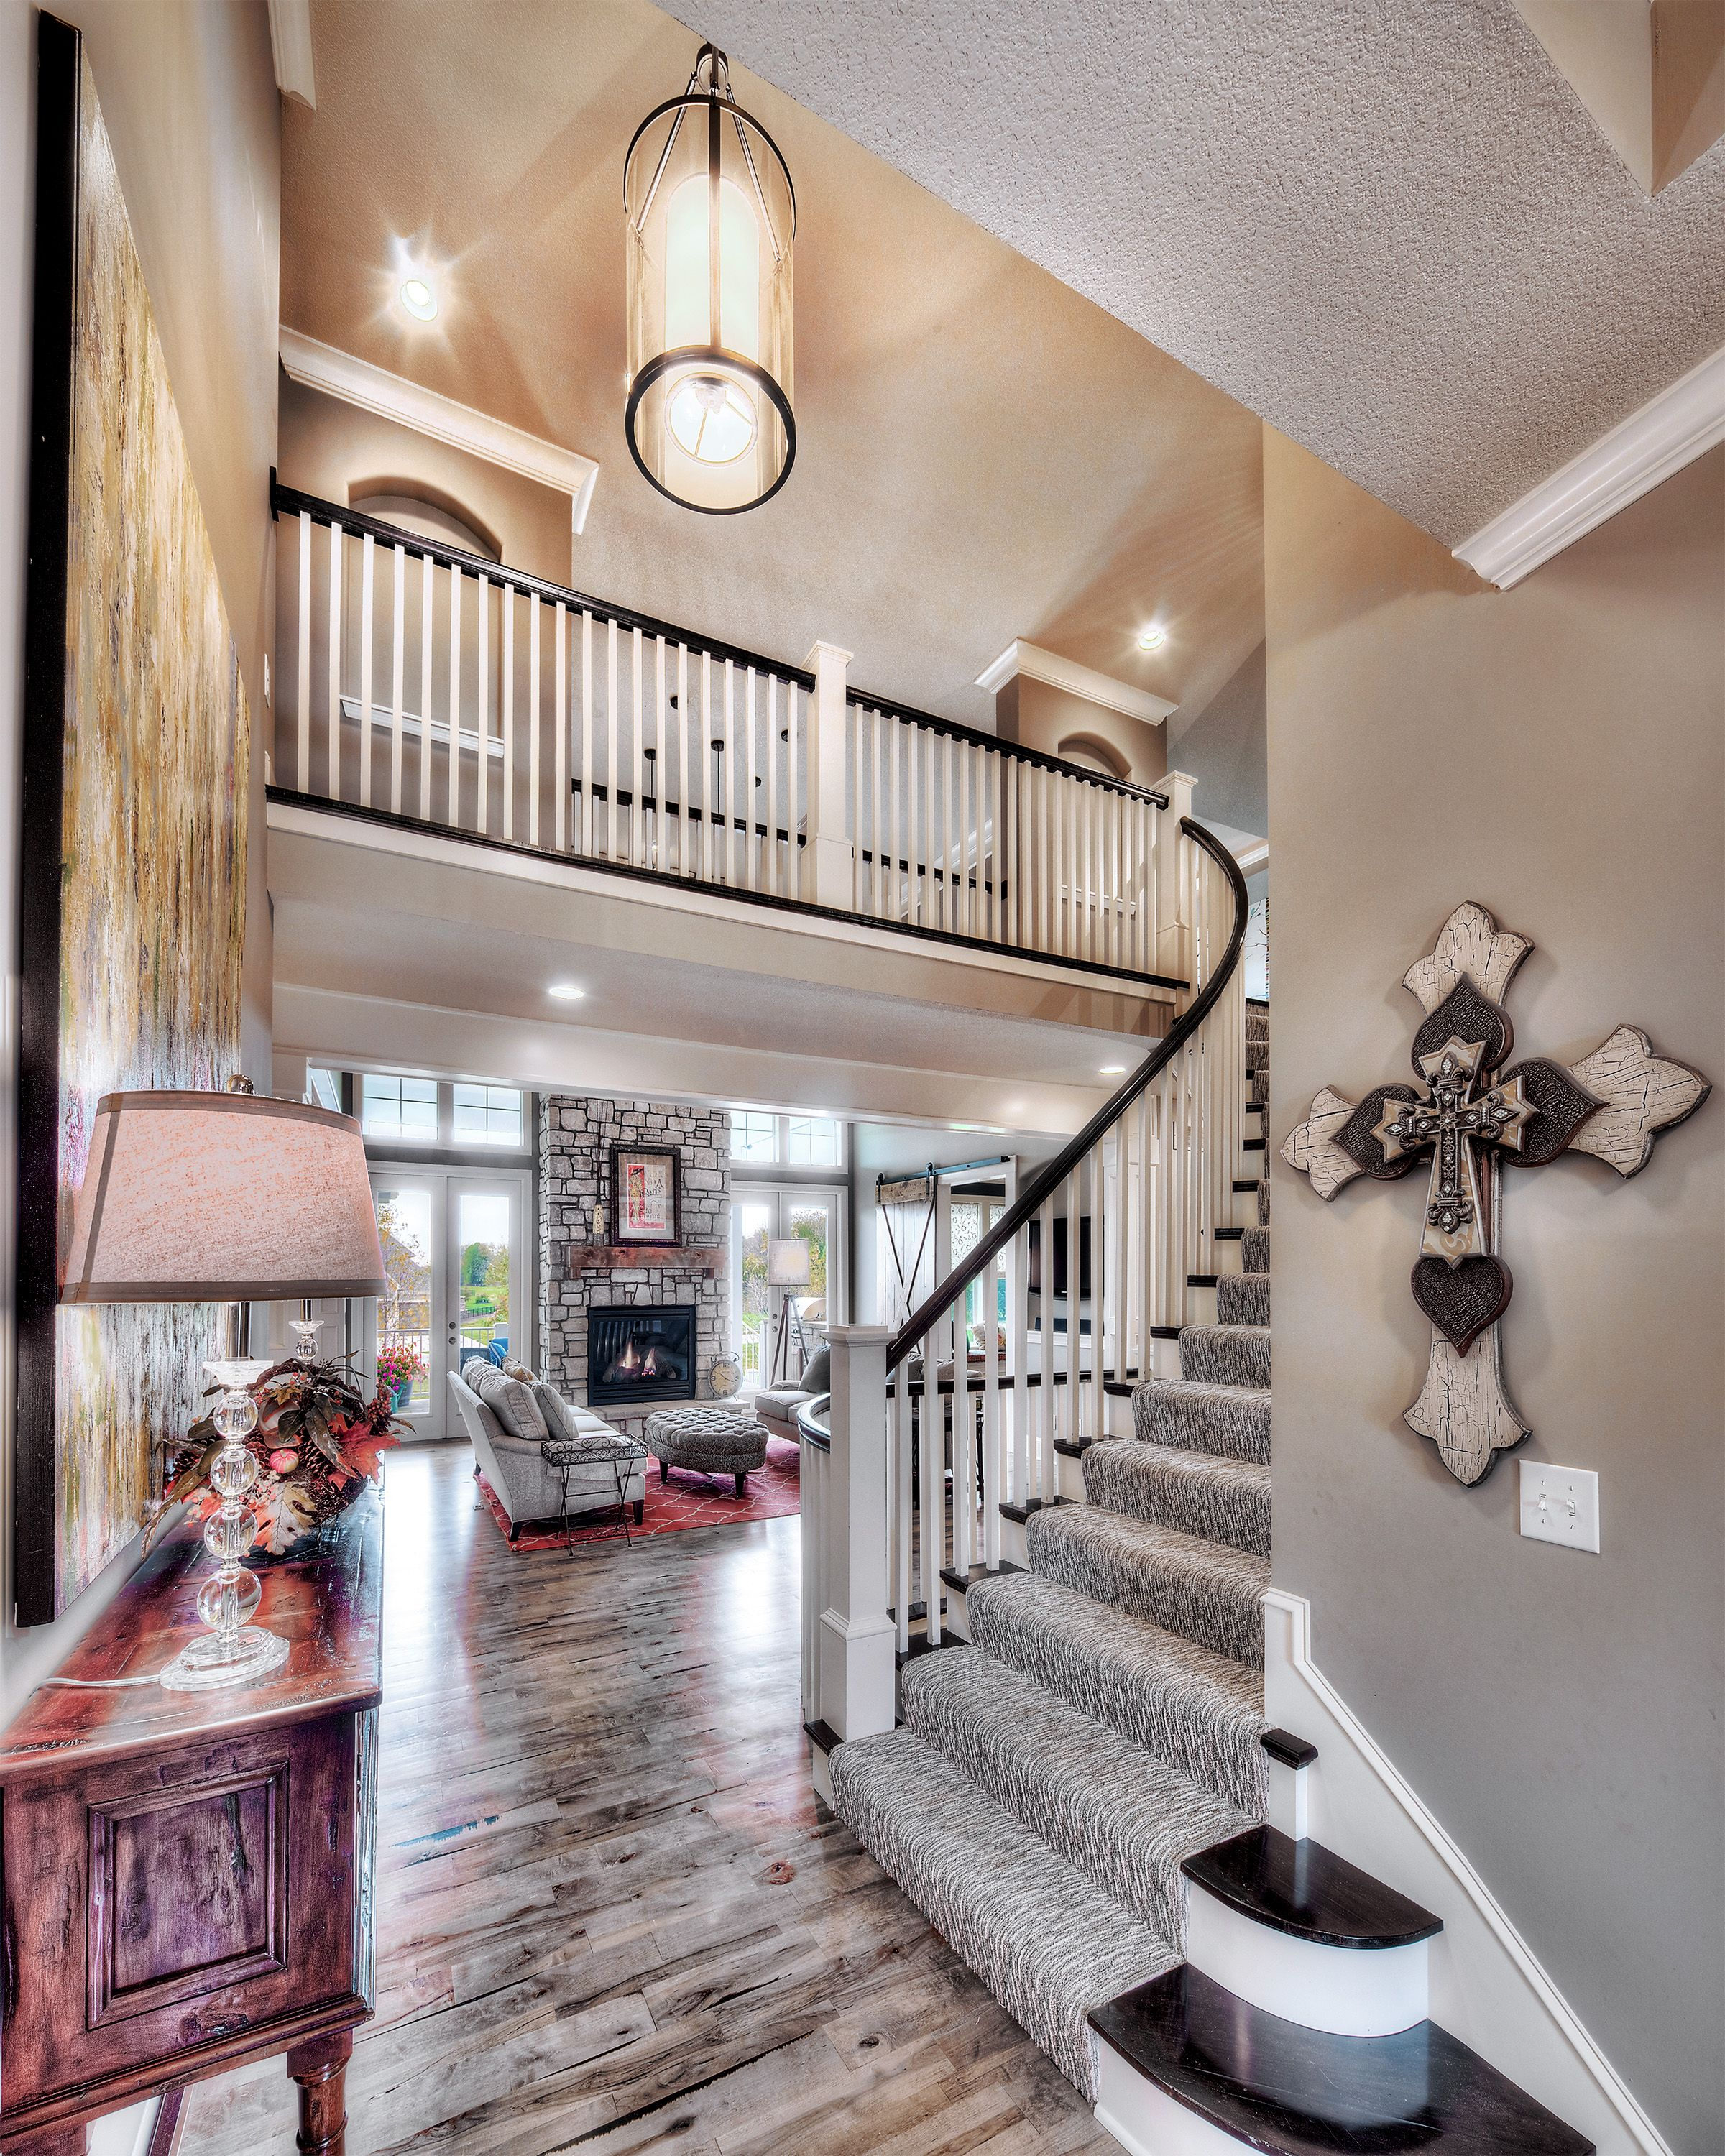 Entry Curved Staircase Open Floor Plan Pendant Lighting